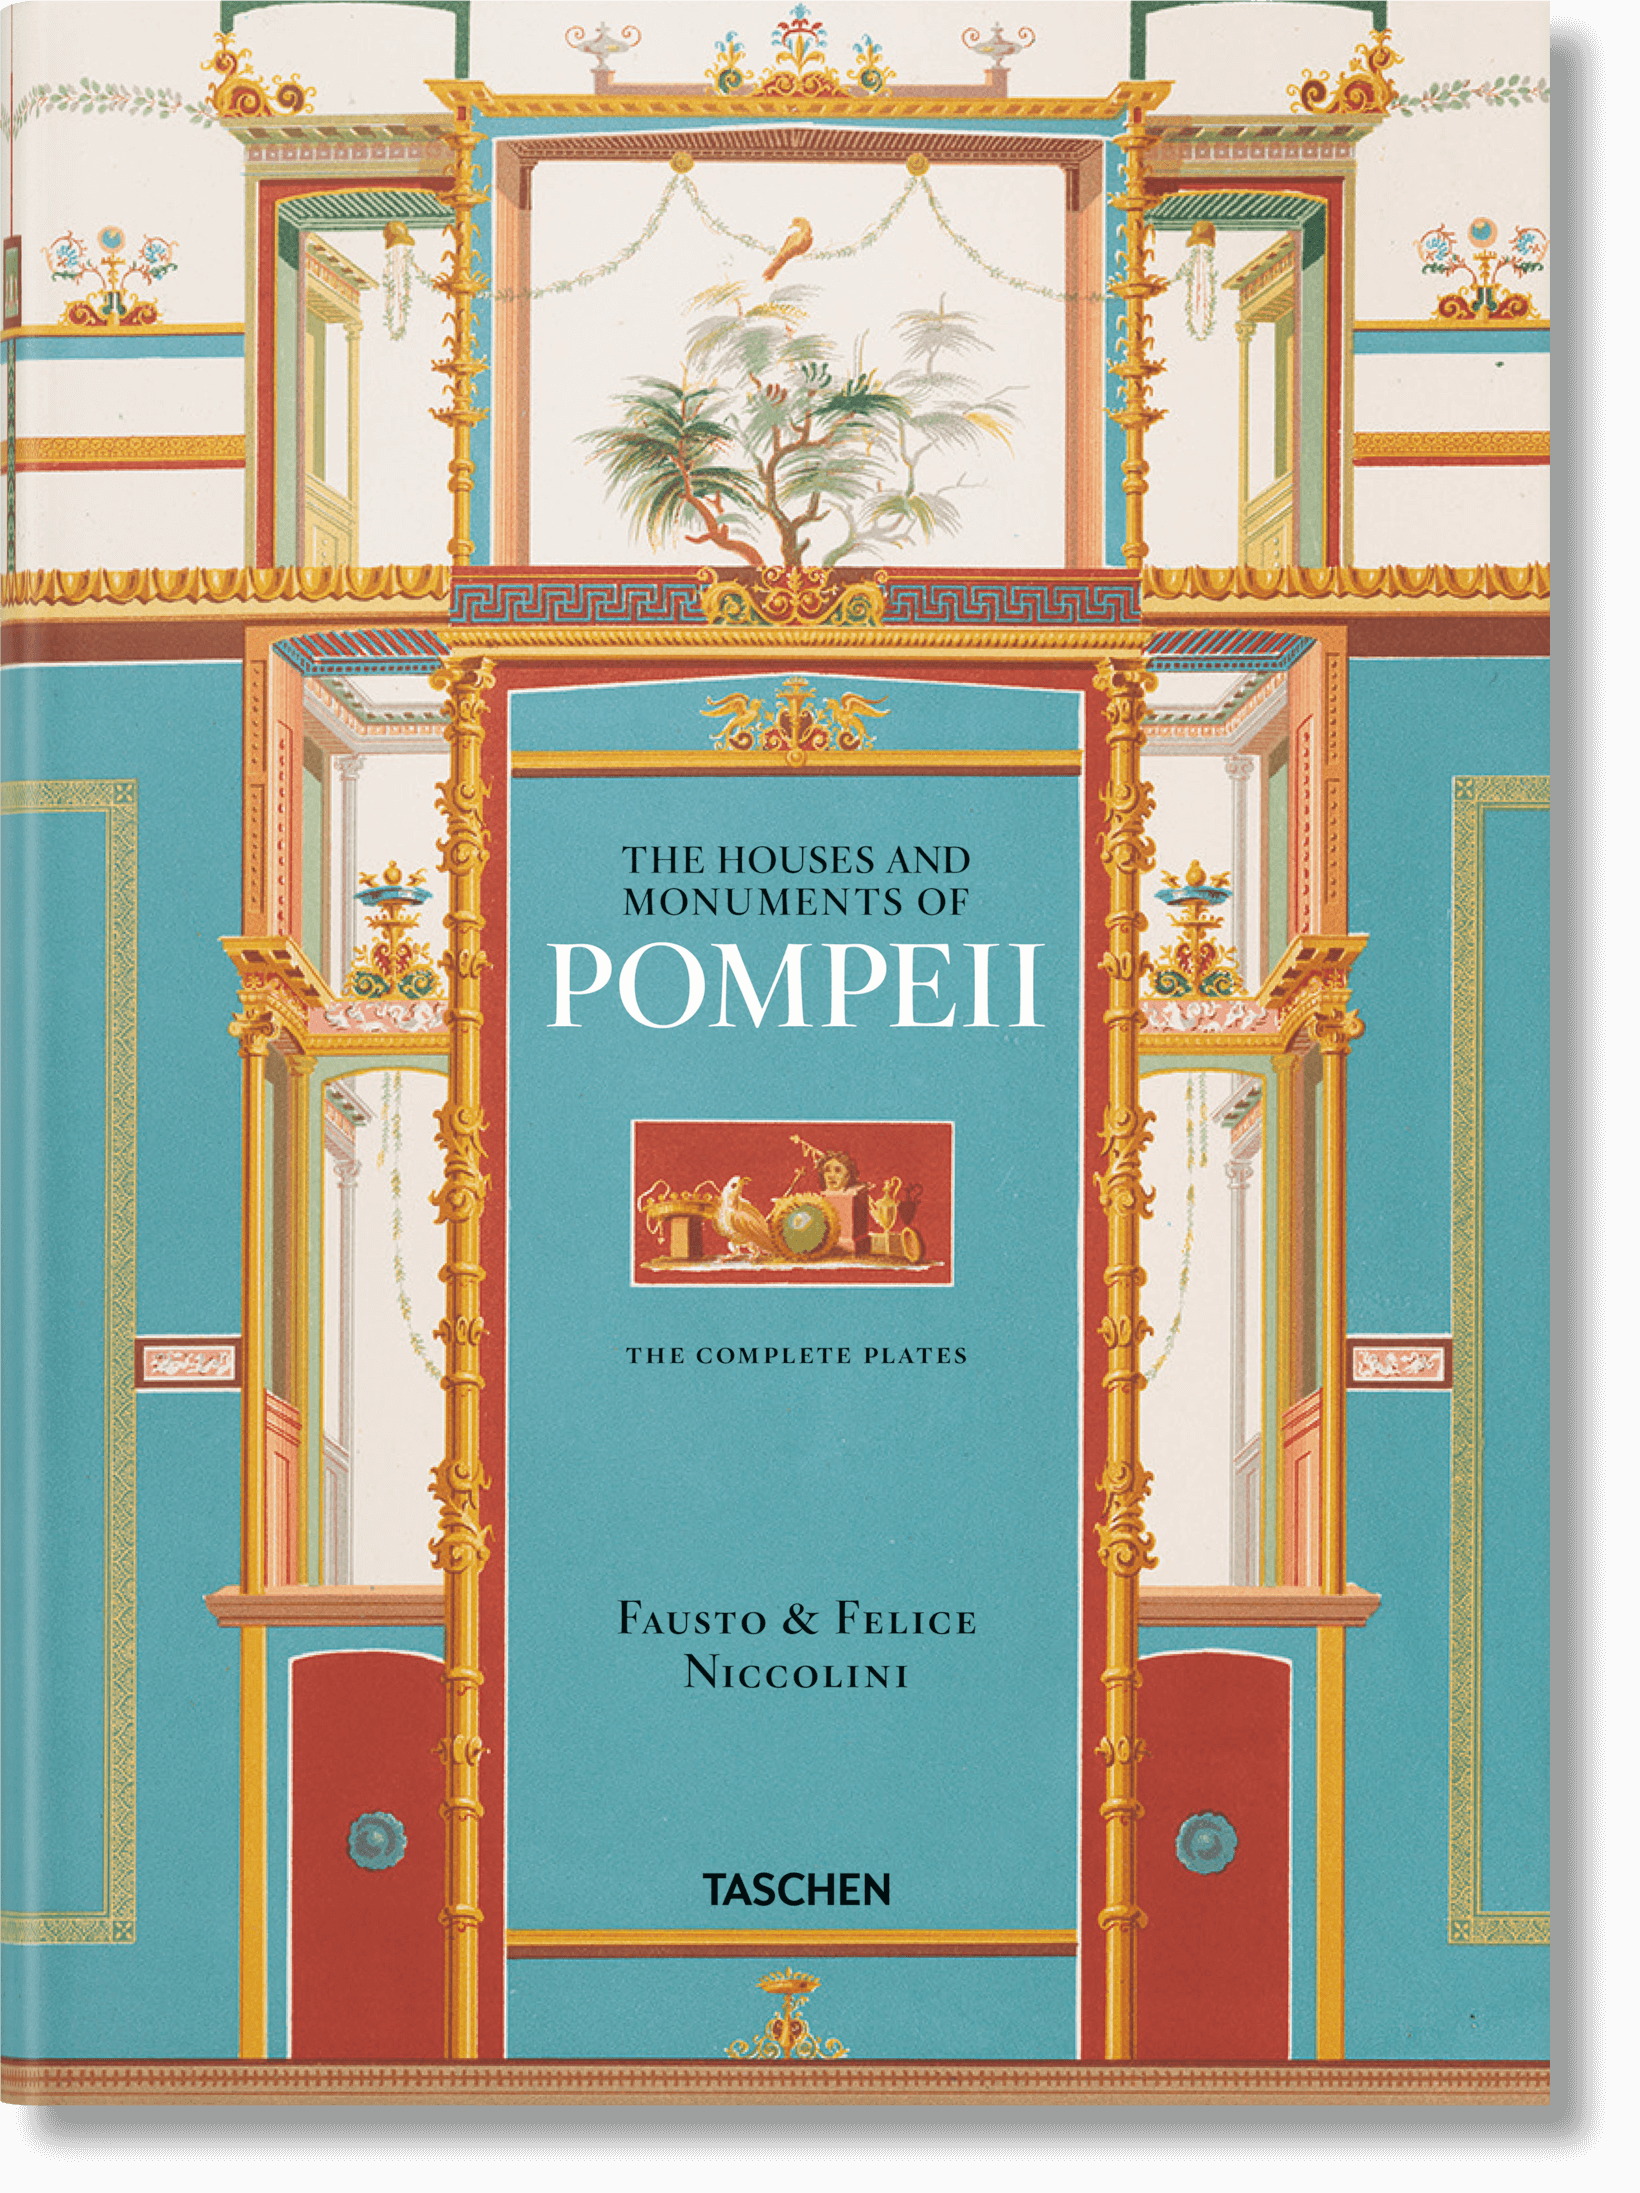 XXL Fausto & Felice Niccolini. The Houses and Monuments of Pompeii